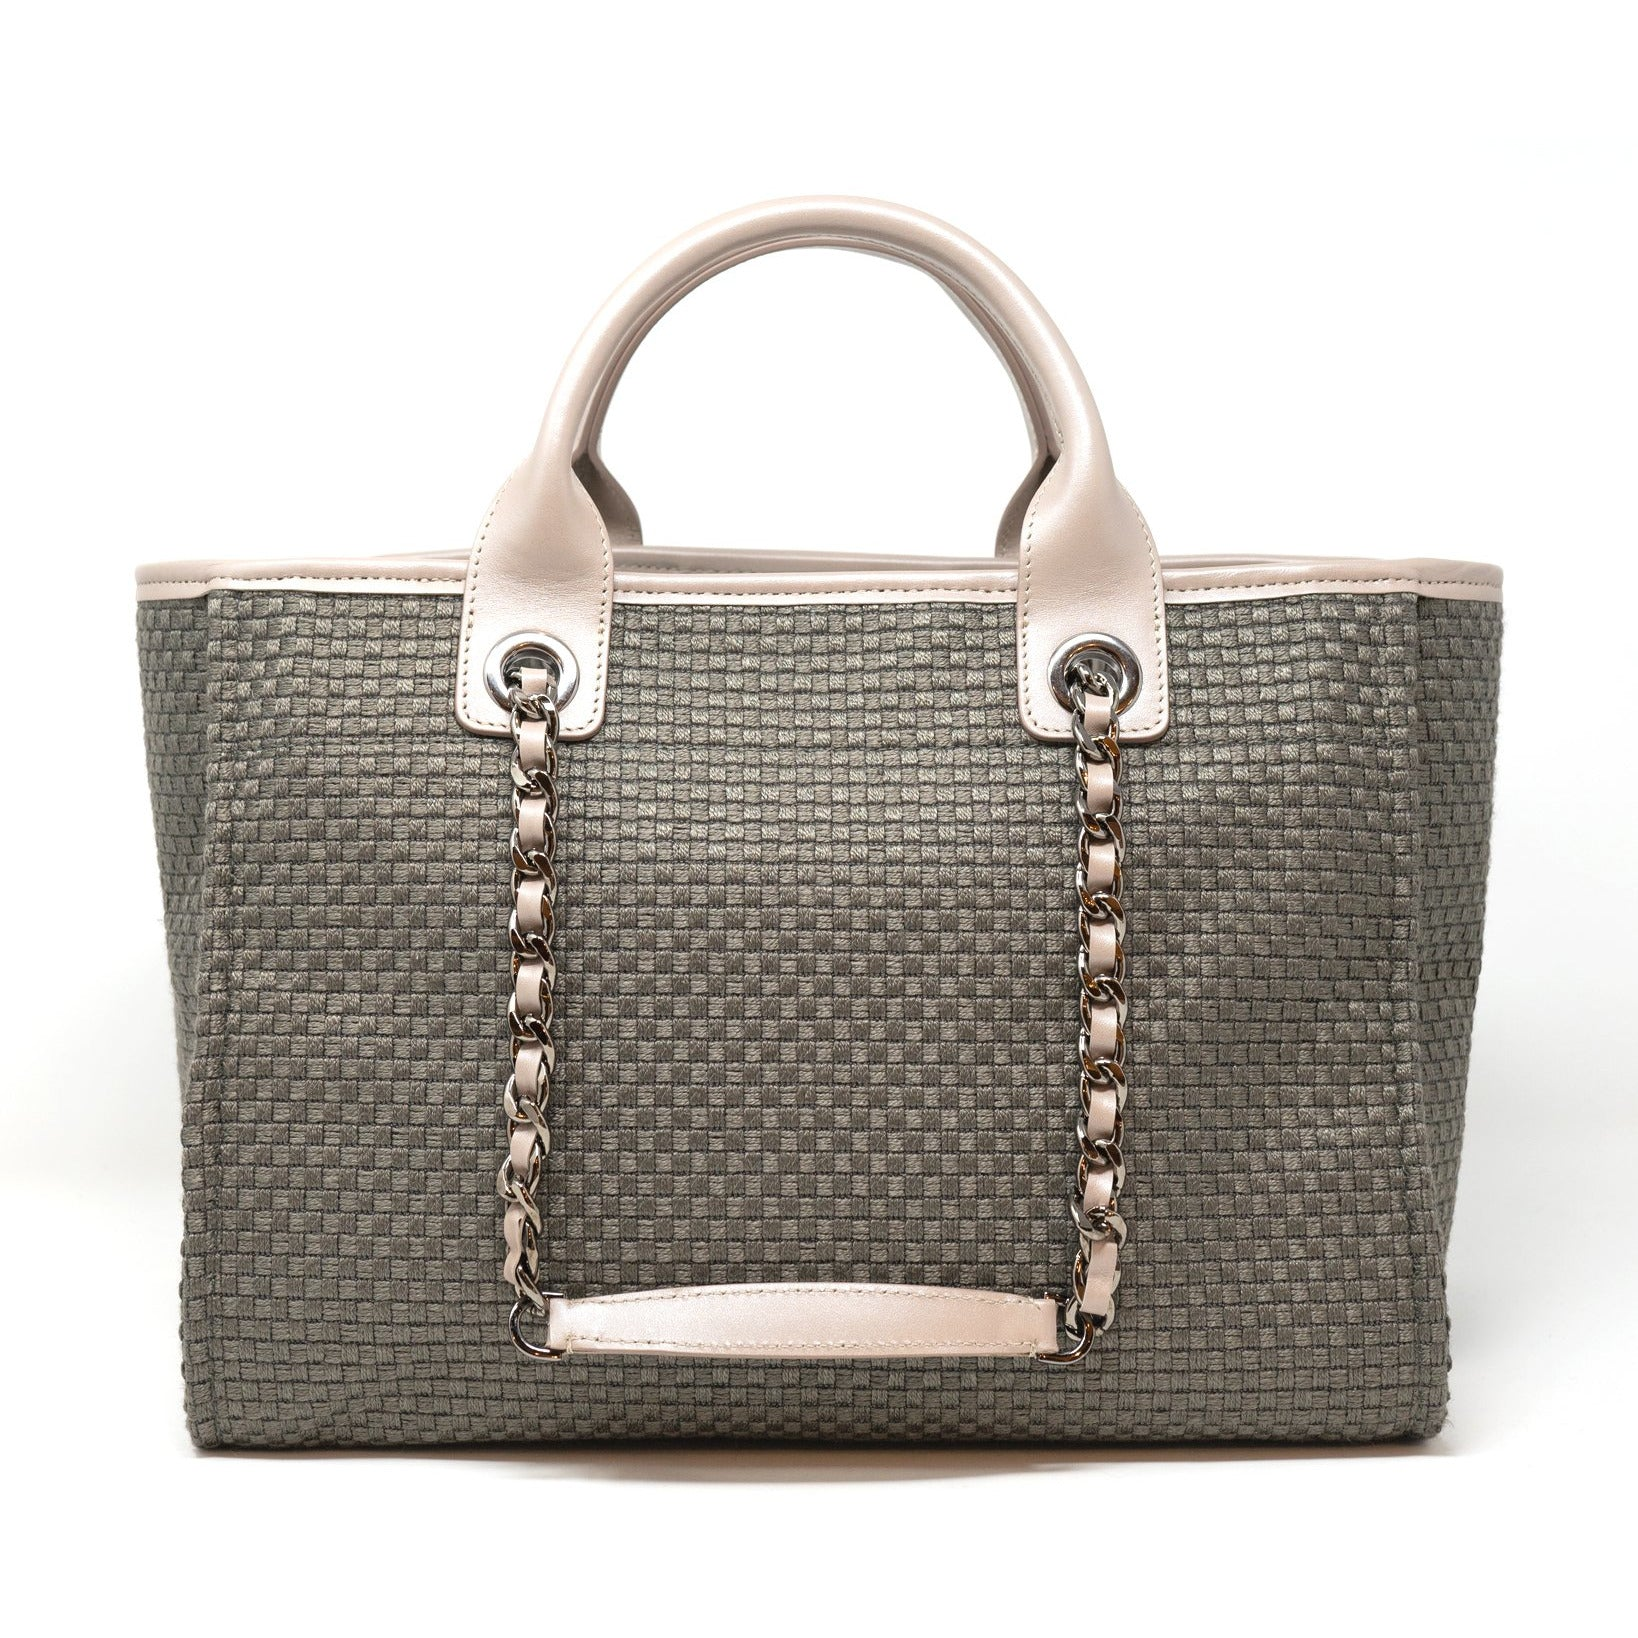 The Palm Beach Medium Shopping Bag in Taupe - Jennifer Tattanelli